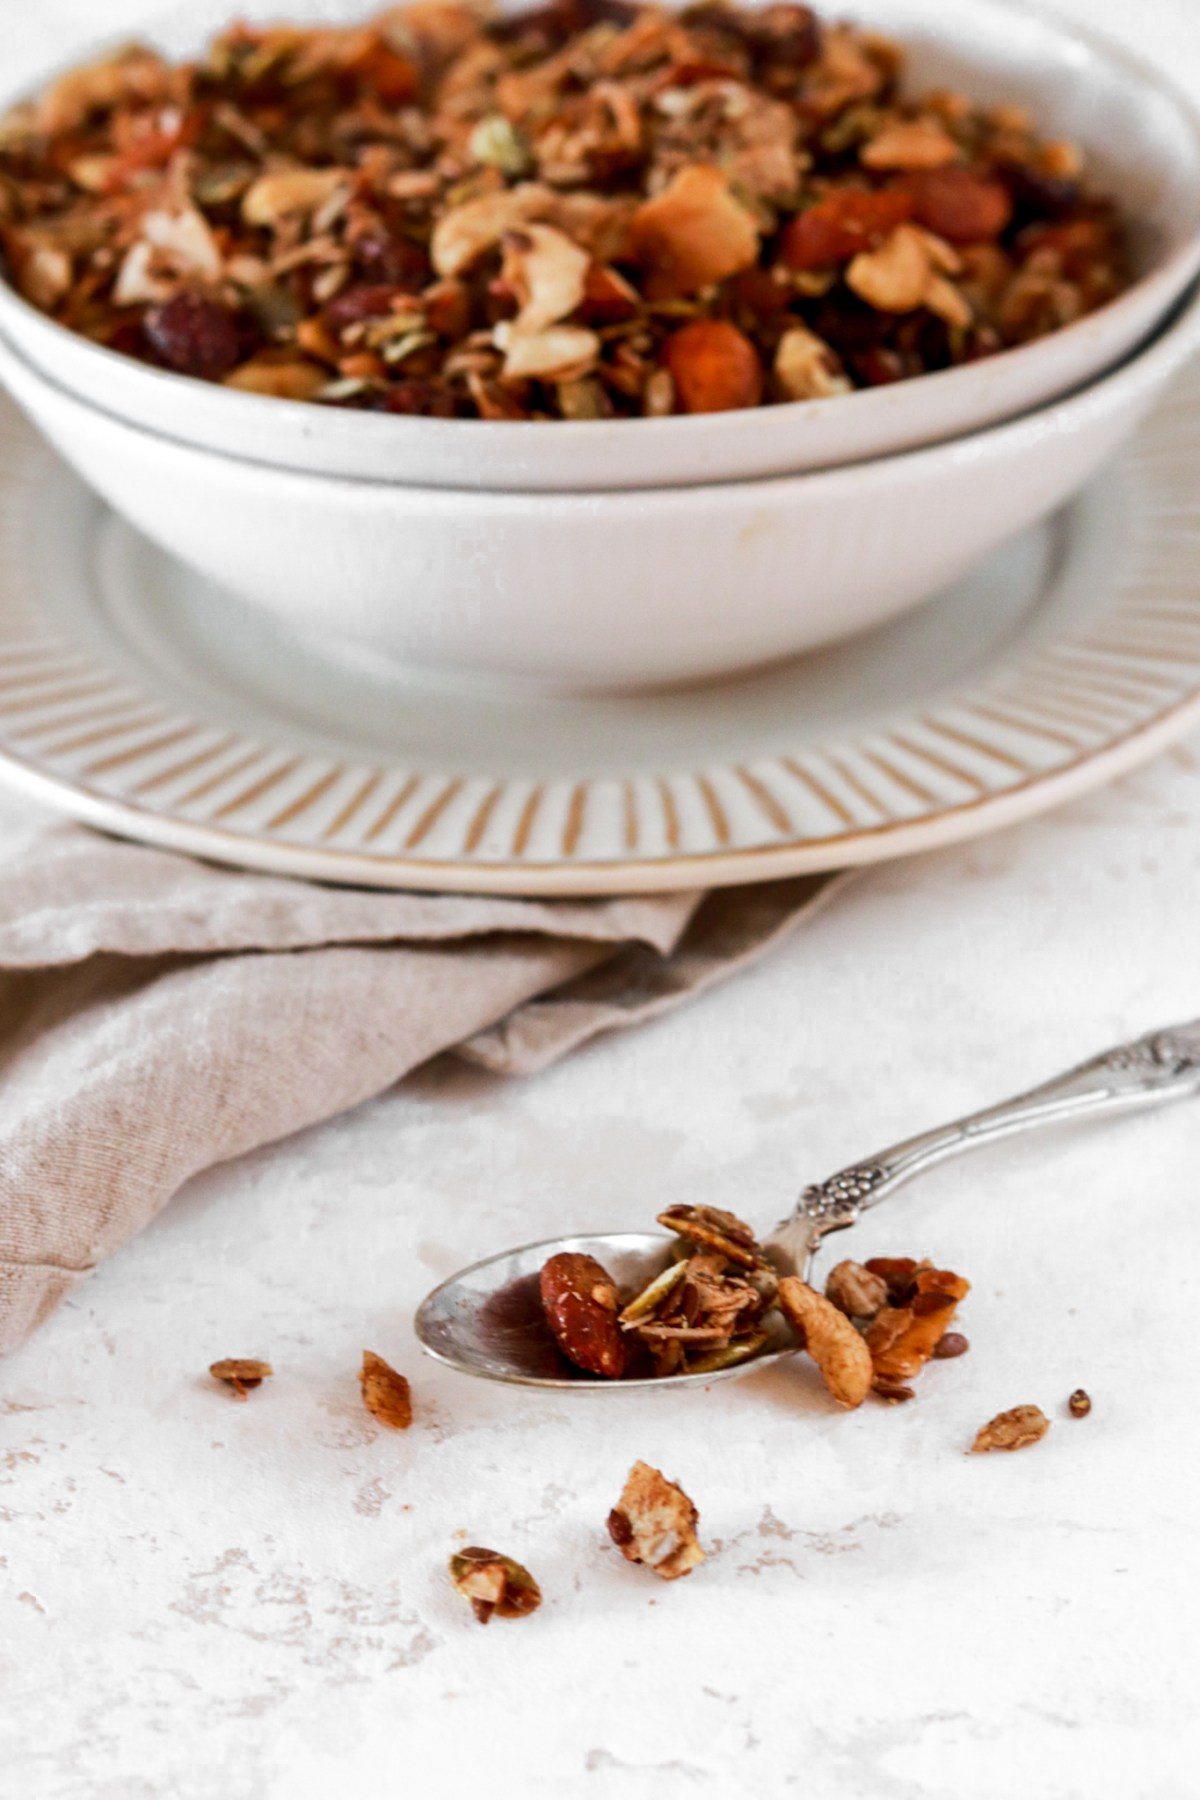 Grain Free Vanilla Granola (Vegan, Gluten, Grain, Sugar Free & Low Carb) From Front on a Spoon